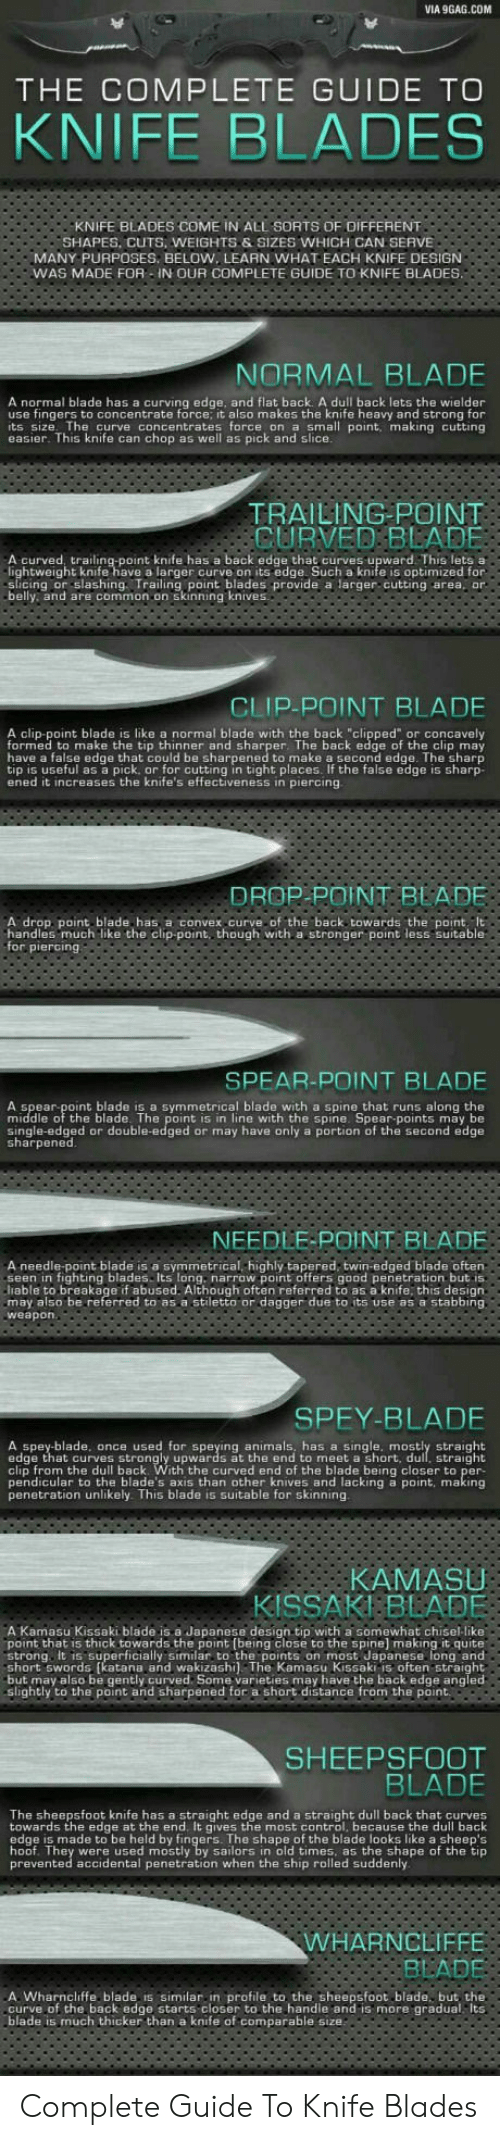 """Symmetrical: VIA 9GAG.COM  THE COMPLETE GUIDE TO  KNIFE BLADES  KNIFE BLADES COME IN ALL SORTS OF OIFFERENT  SHAPES, CUTS, WEIGHTS &SIZES WHICH CAN SERVE  MANY PURPOSES, BELOW, LEARN WHAT EACH KNIFE DESIGN  WAS MADE FOR -IN OUR COMPLETE GUIDE TO KNIFE BLADES.  NORMAL BLADE  A normal blade has a curving edge, and flat back A dull back lets the wielder  use fingers to concentrate force, it also makes the knife heavy and strong for  its size The curve concentrates force on a small point, making cutting  easier. This knife can chop as well as pick and slice.  TRAILING POINT  CURVED BLADE  A curved, trailing-point knife has a back edge that curves upward This lets a  lightweight knife have a larger curve on its edge Such a knife is optimized for  slicing or slashing Trailing point blades provide a larger cutting area, or  belly and are common on skinning knives  CLIP-POINT BLADE  A clip-point blade is like a normal blade with the back """"clipped"""" or concavely  formed to make the tip thinner and sharper. The back edge of  have a false edge that could be sharpened to make a second edge. The sharp  tip is useful as a pick, or for cutting in tight places. If the false edge is sharp-  ened it increases the knife's effectiveness in piercing  clip may  the  DROP POINT BLADE  A drop point blade has a convex.curve of the back towards the point It  handles much like the clip-point, though with a stronger point less suitable  for piercing  SPEAR-POINT BLADE  A spear-point blade is a symmetrical blade with a spine that runs along the  middle of the blade. The point is in line with the spine. Spear-points may be  single-edged or double-edged or may have only a portion of the second edge  sharpened  NEEDLE-POINT BLADE  A needle-point blade is a symmetrical,highly tapered, twin-edged blade often  seen in fighting blades Its long. narrow point offers good penetration but is  liable to breakage if abused. Although often referred to as a knife, this design  may also be referred to as a stil"""